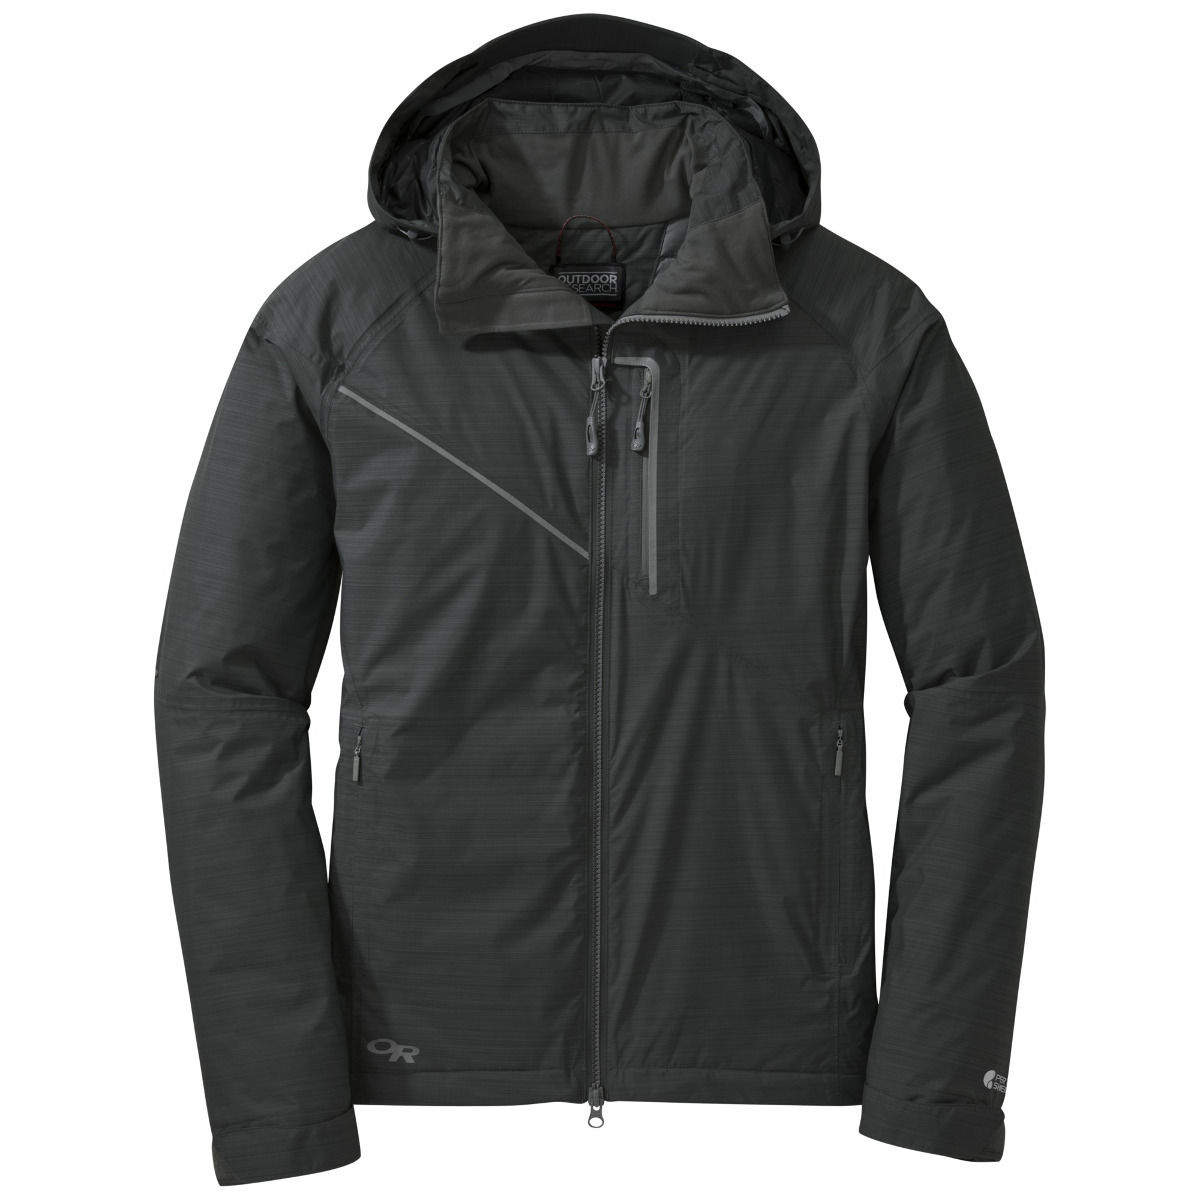 Outdoor Research StormBound Jacket